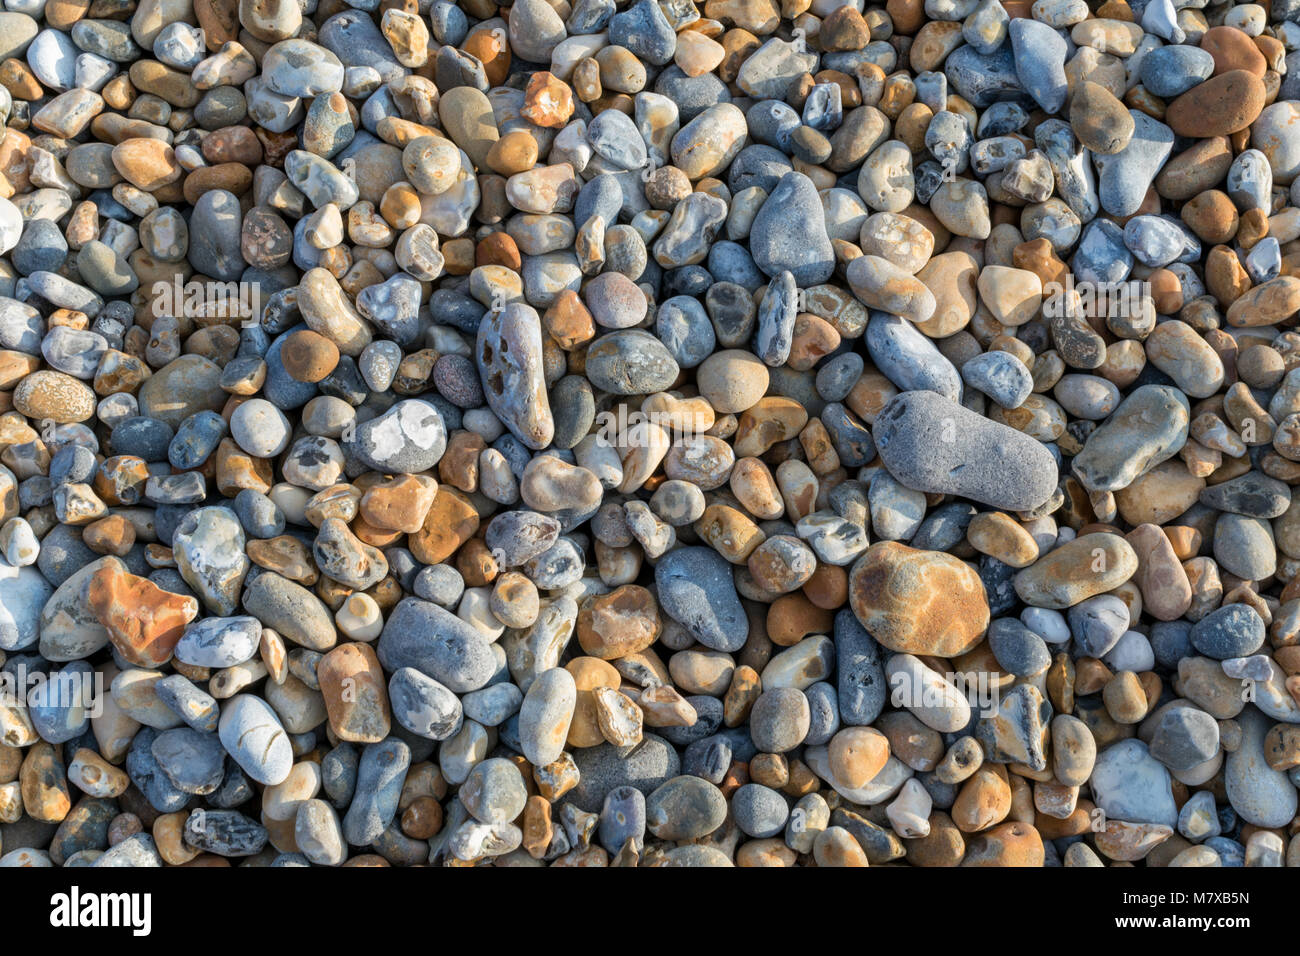 Close-up of shingle on the beach at Bexhill-on-Sea with a mix of grey, ochre and bluey-white pebbles of different - Stock Image